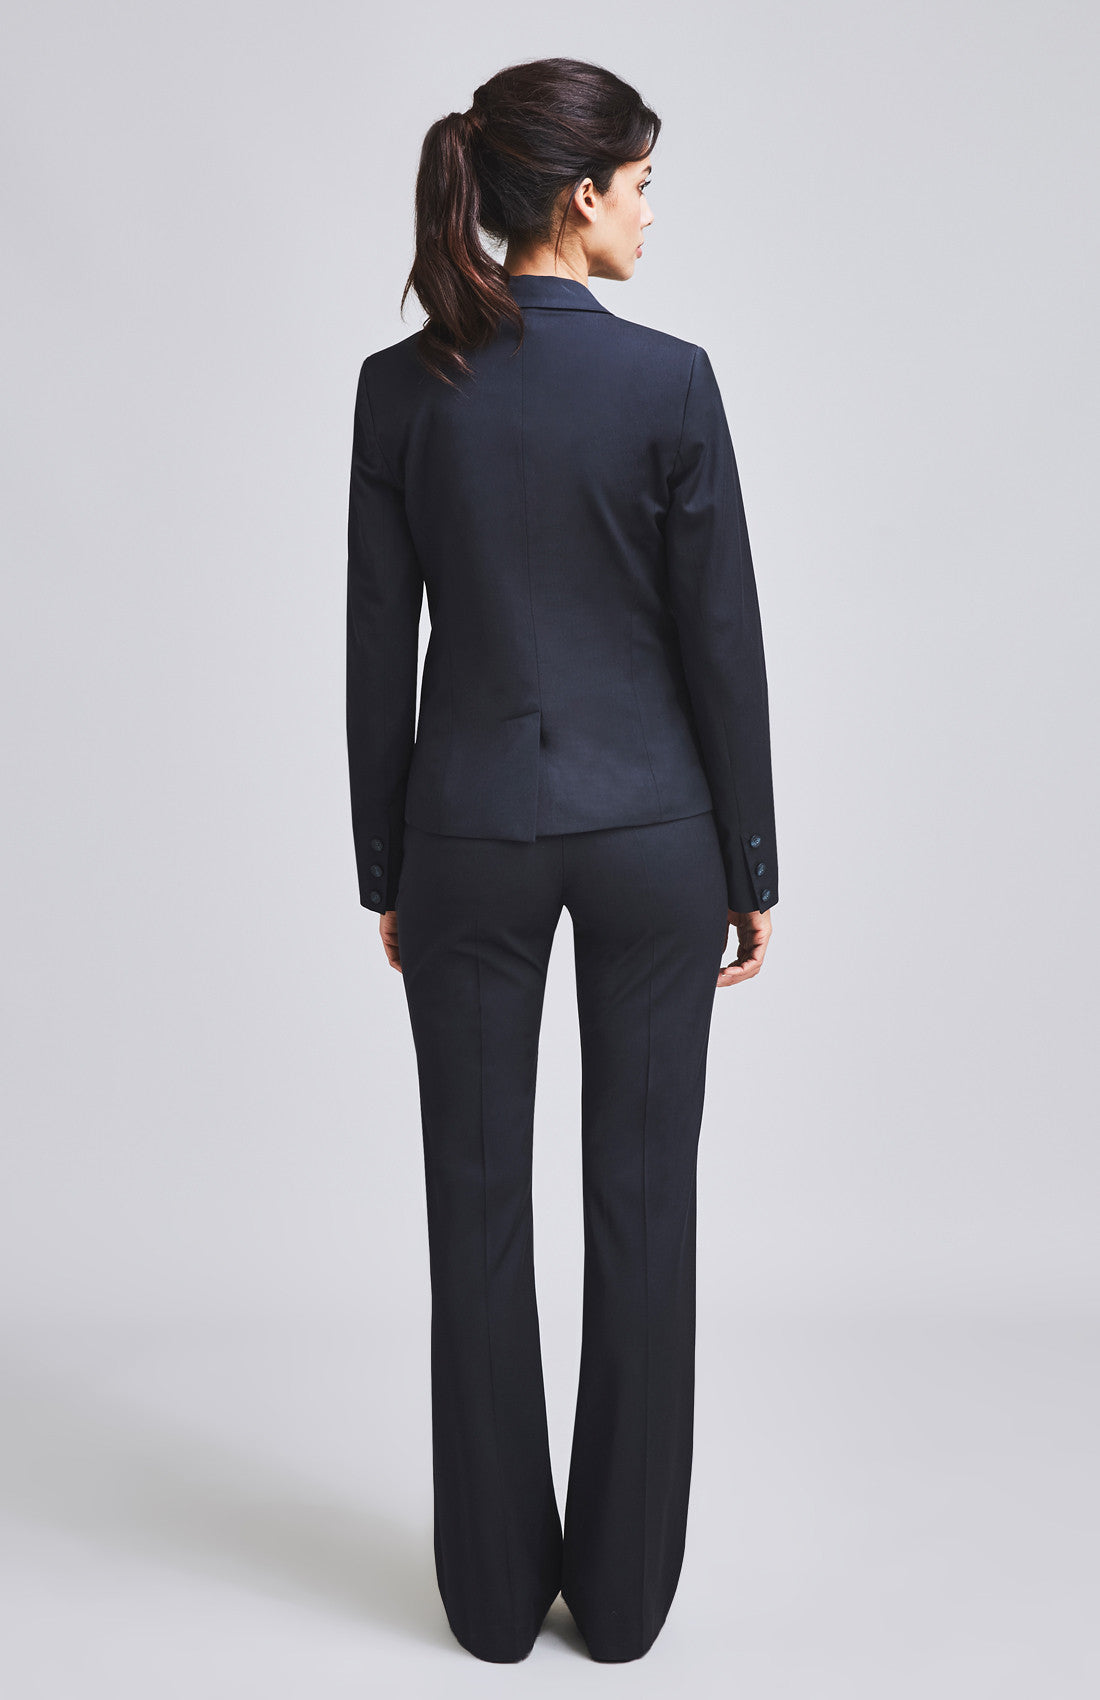 Women's smart trouser suit for the office navy